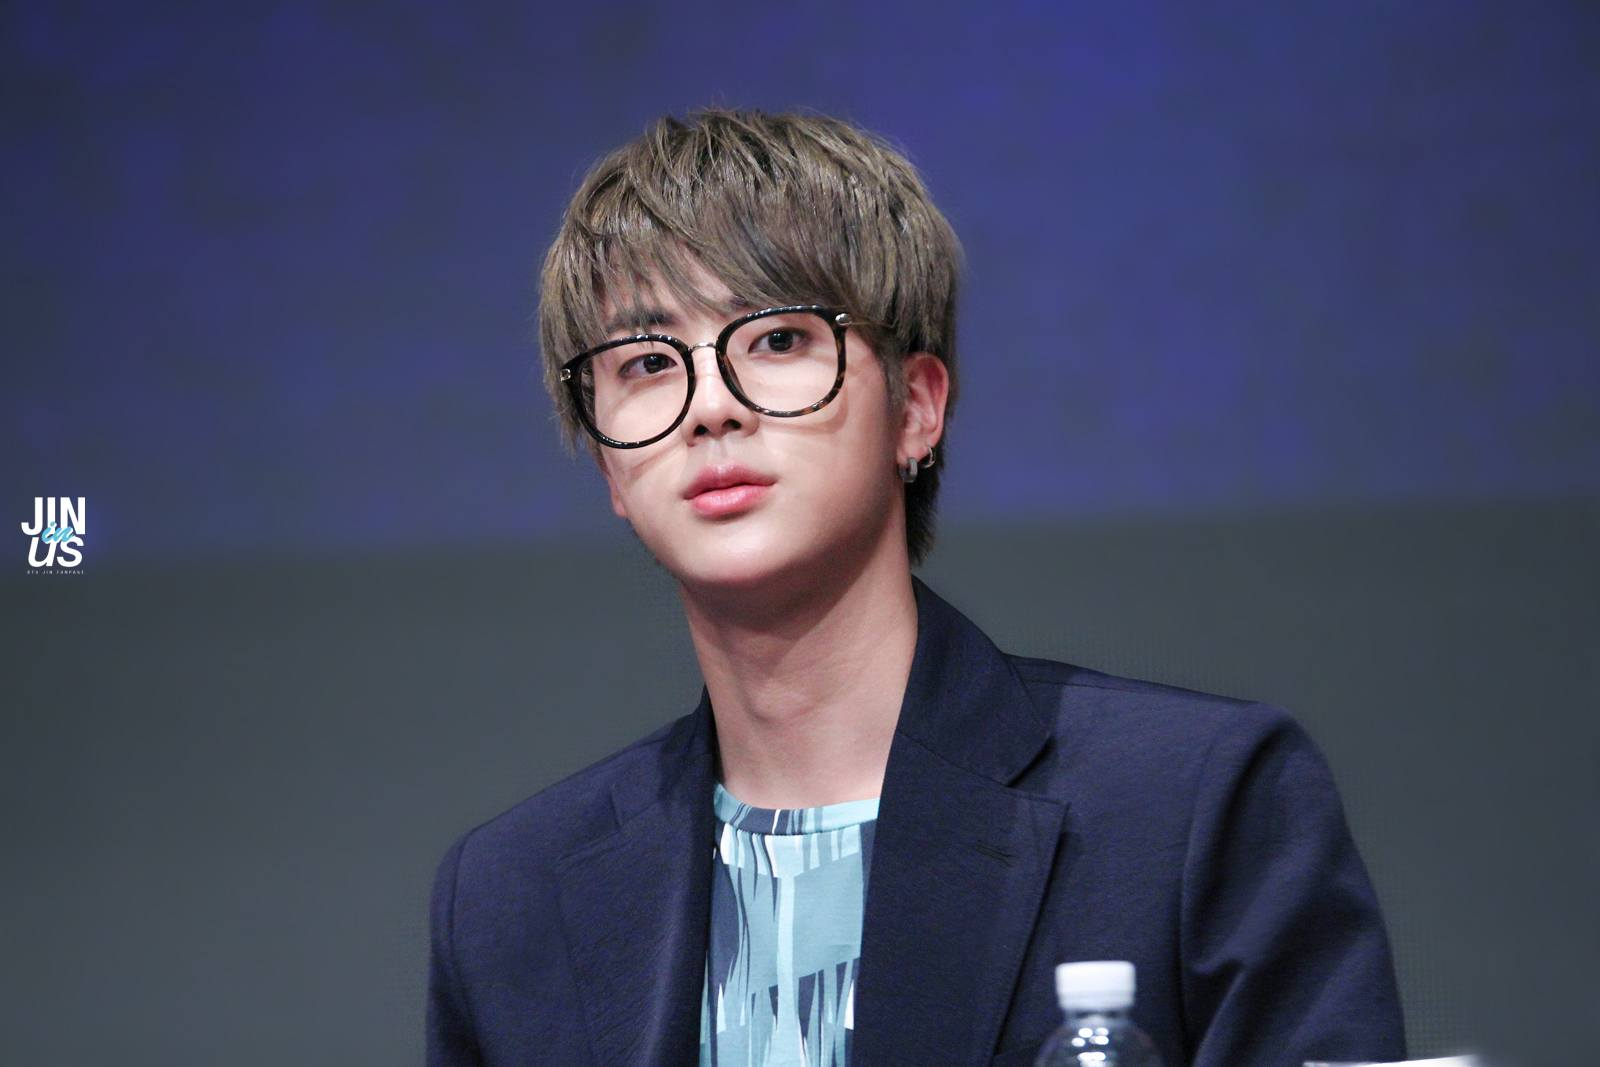 21 Photos Of BTS In Glasses Prove Smart Is The New Sexy ...